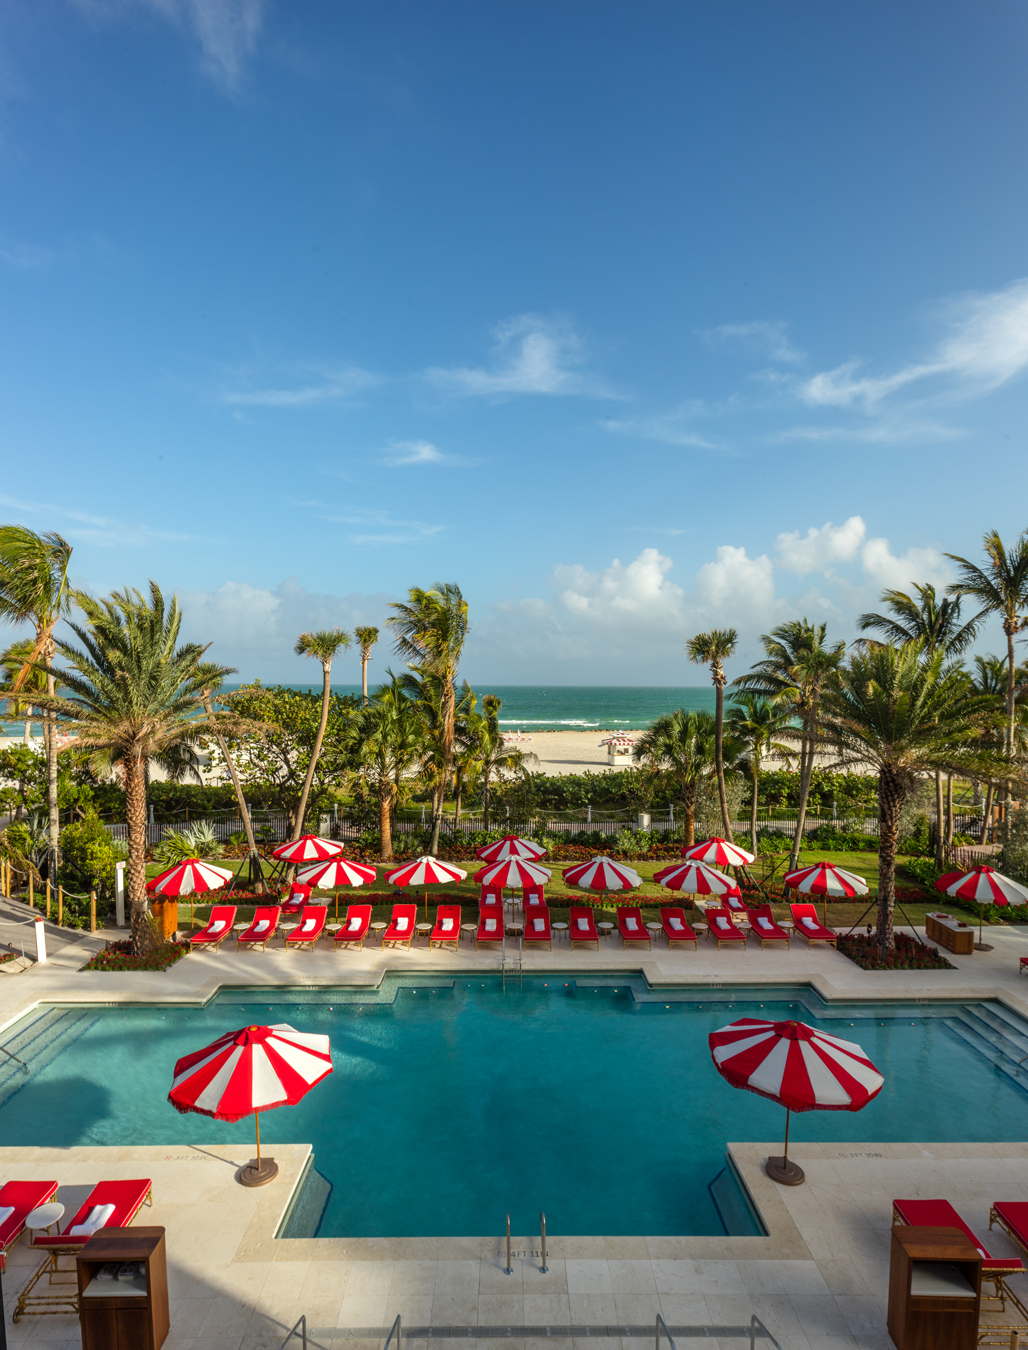 NUVO Summer 2016: The Faena District, Inquiring Minds